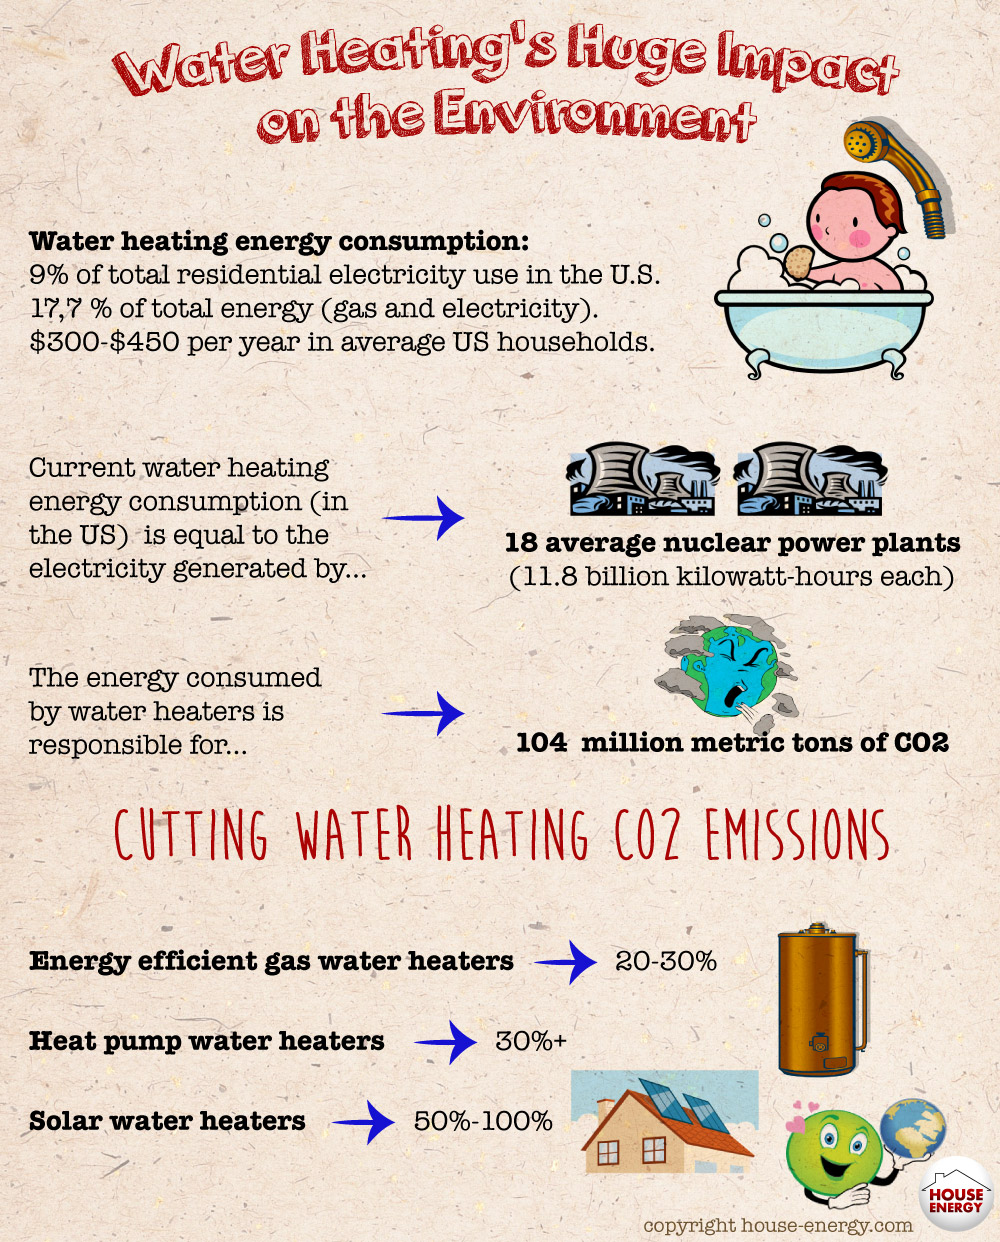 Water Heating Huge Impact on the Environment